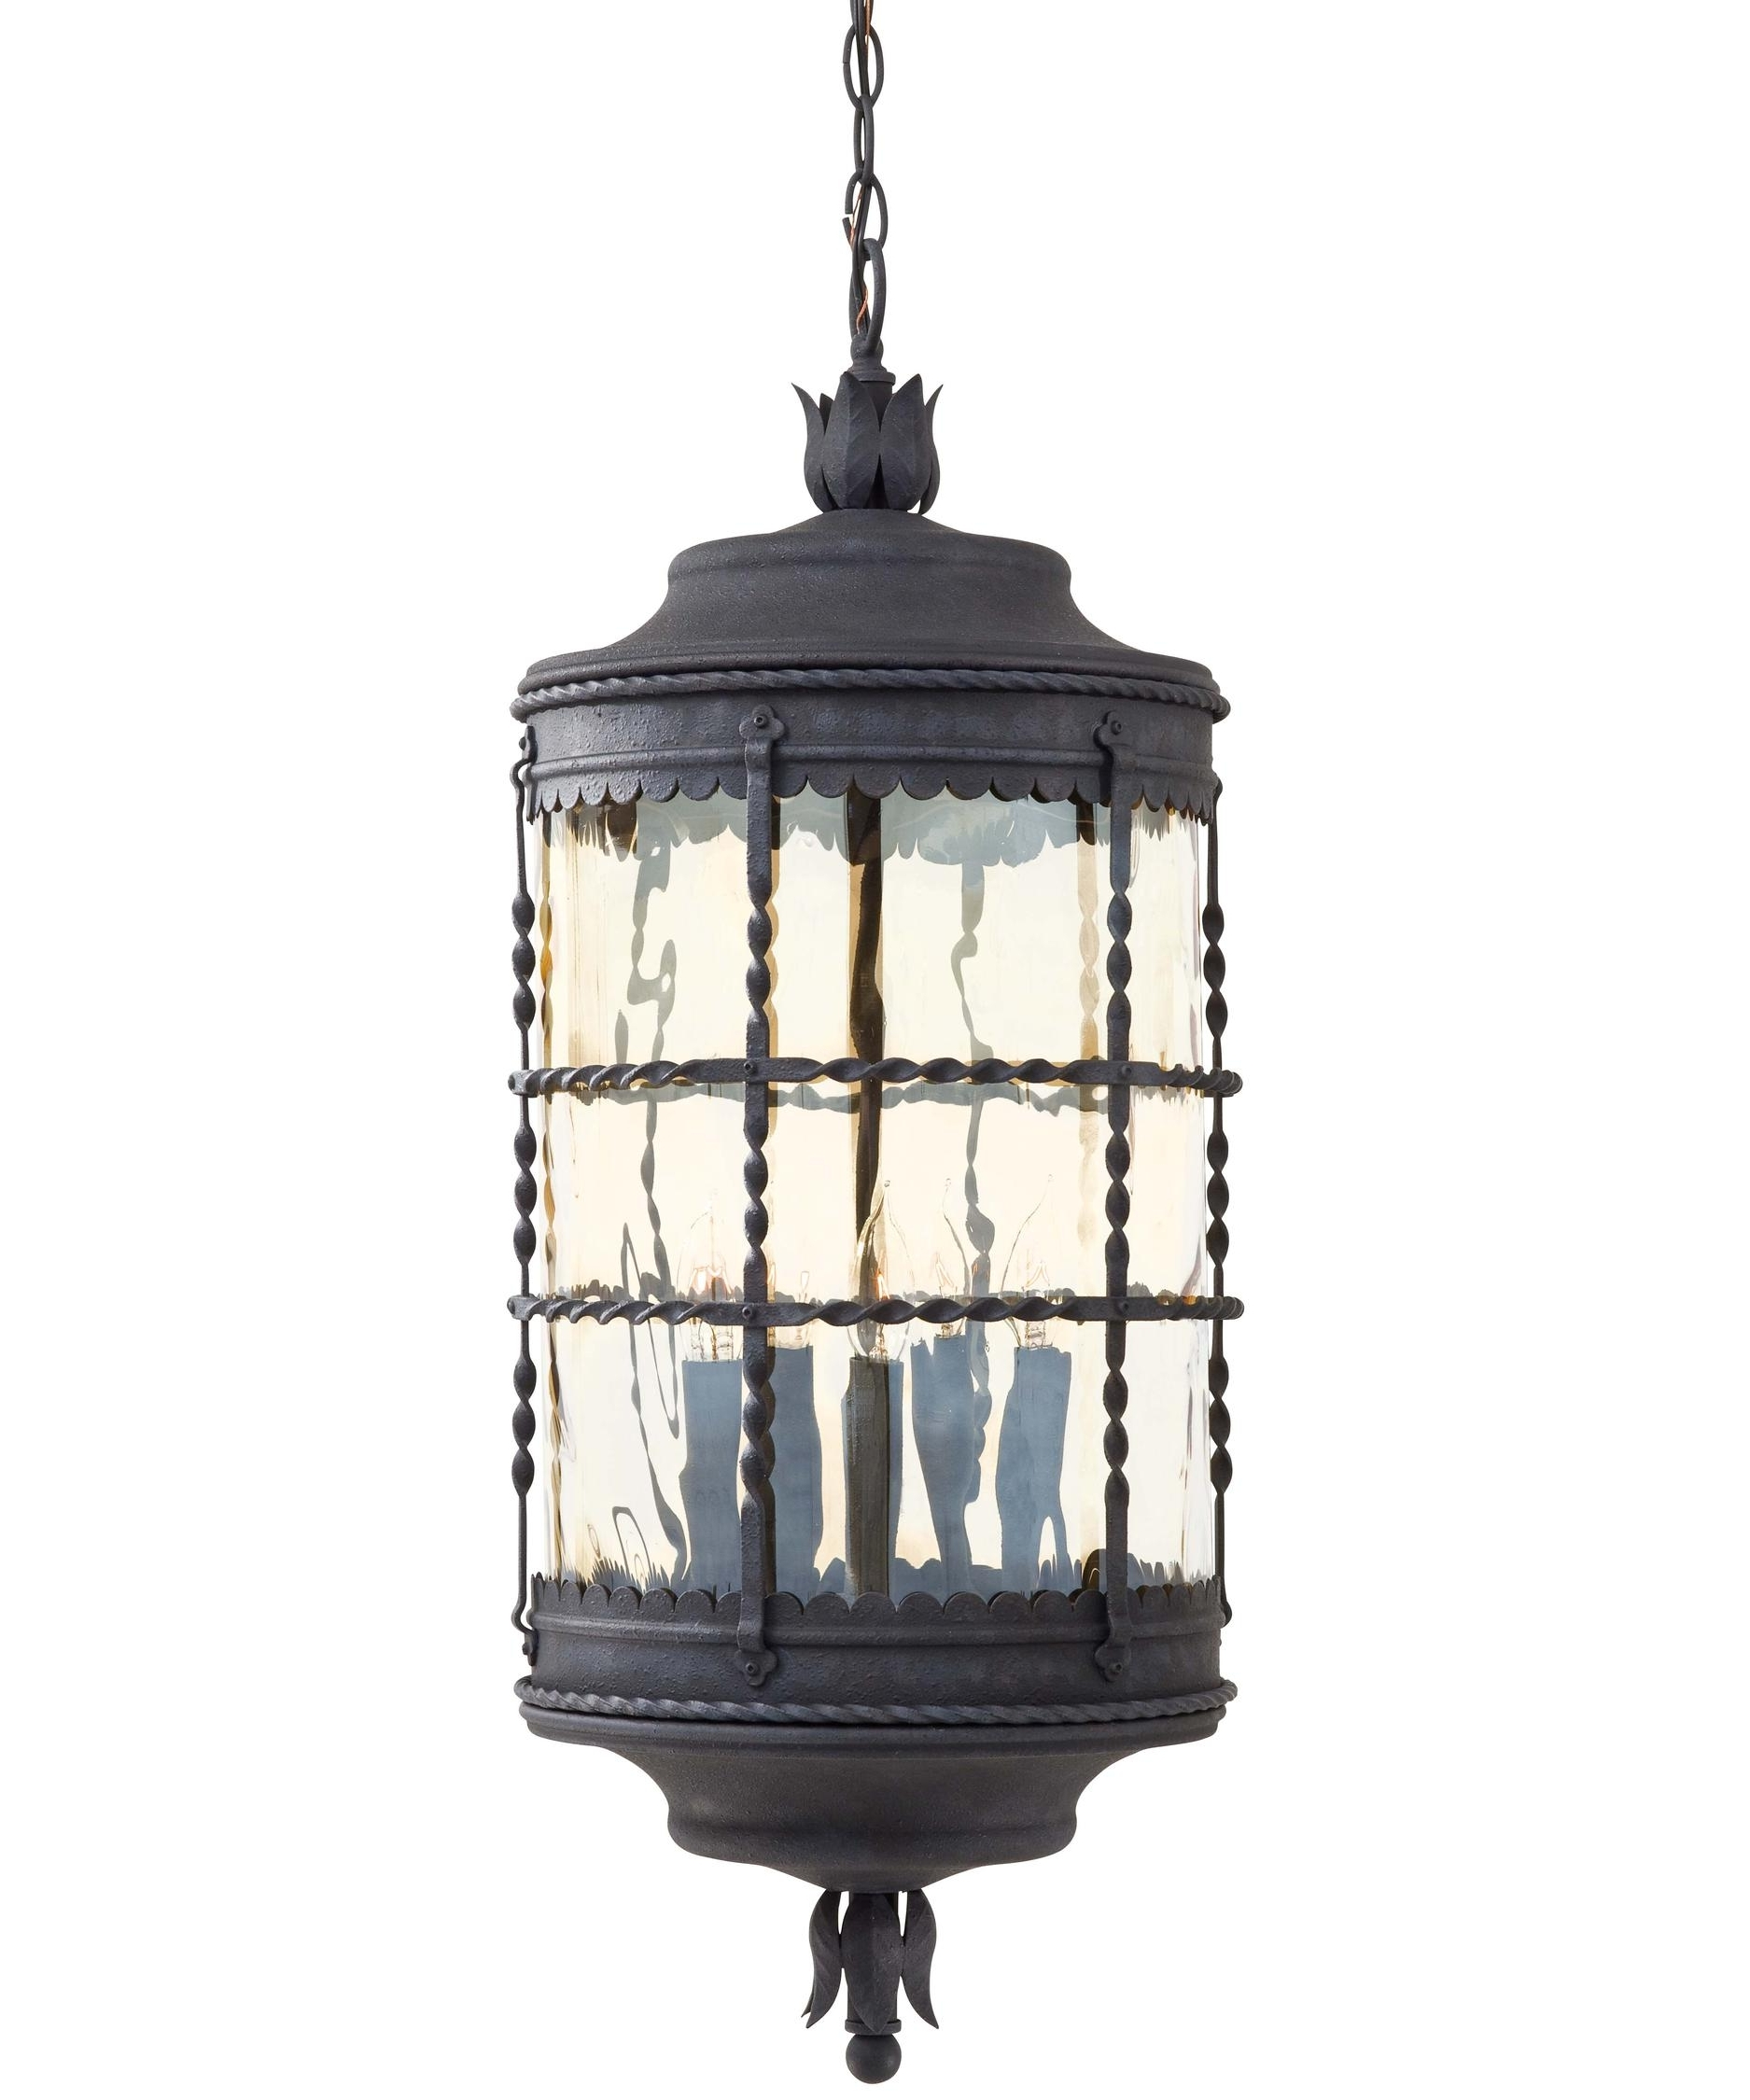 Most Recently Released Outdoor Iron Hanging Lights With Regard To Minka Lavery 8884 Mallorca 13 Inch Wide 5 Light Outdoor Hanging (View 8 of 20)